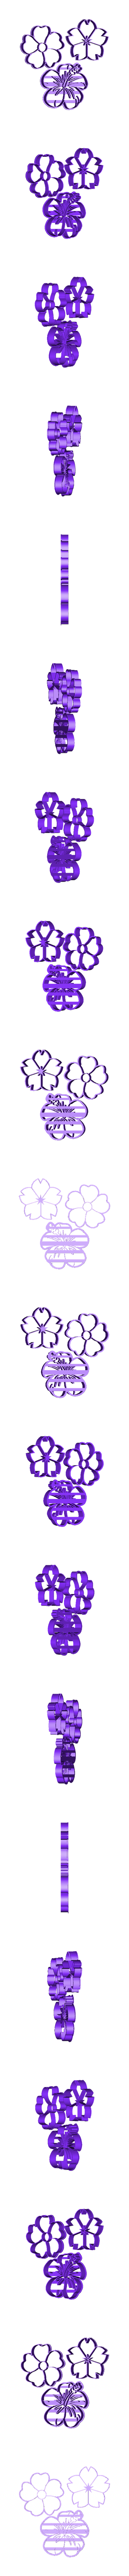 Download Stl File Flowers Flowers Cookie Cutter 3d Print Model Cults